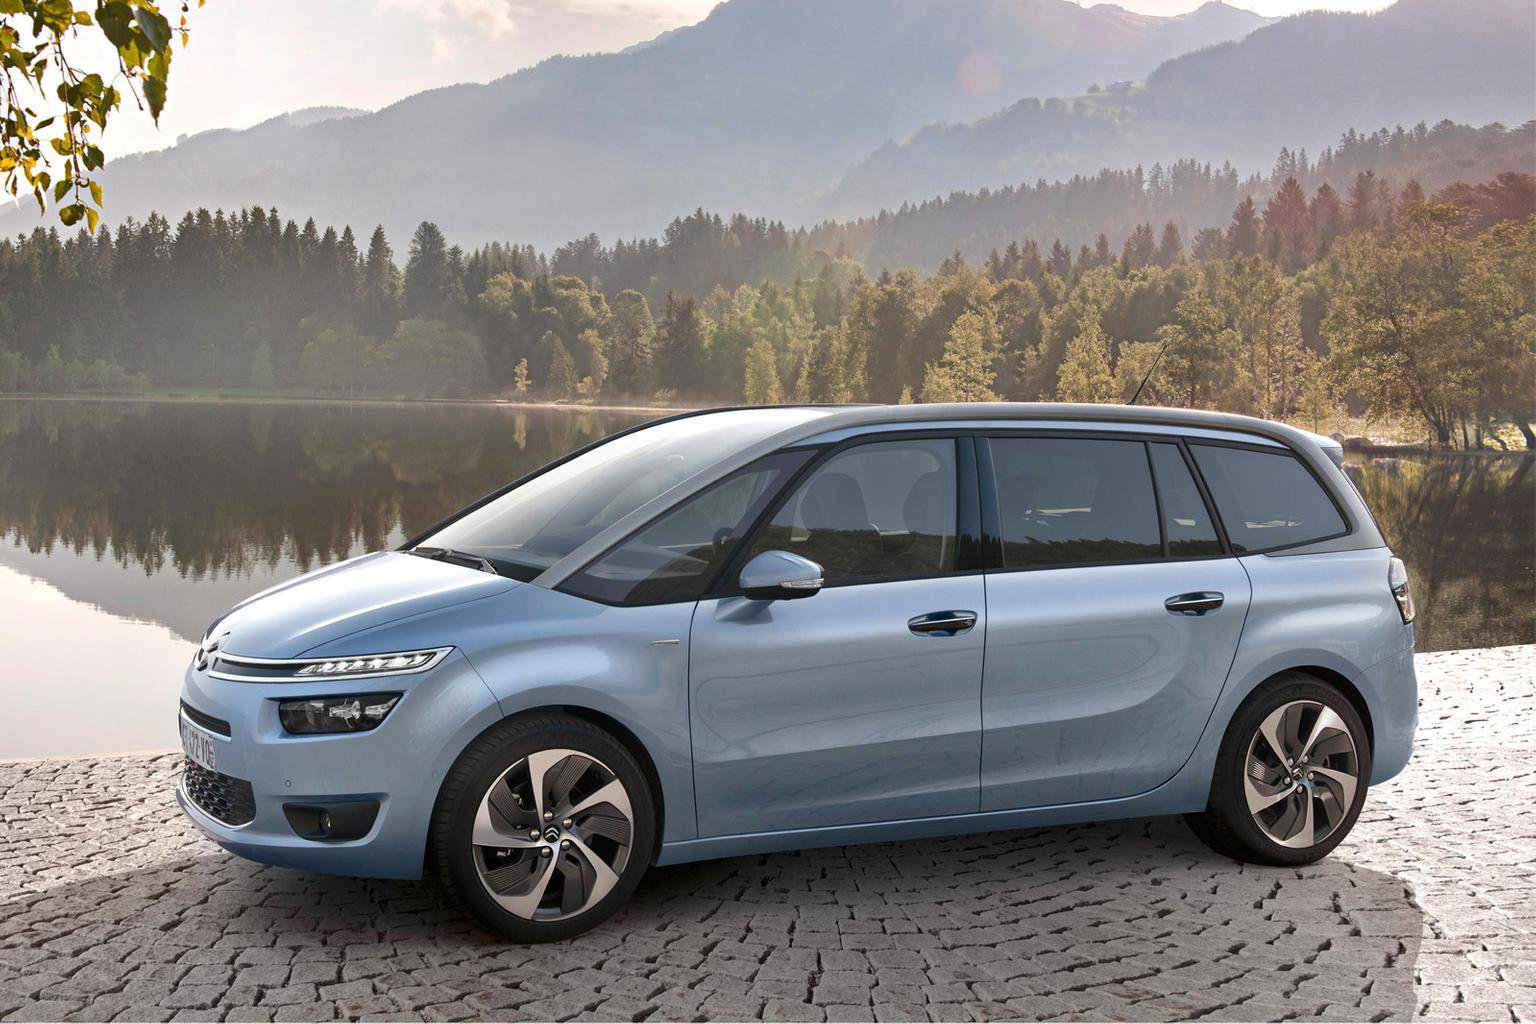 Exclusive 2014 Citroen Grand C4 Picasso preview